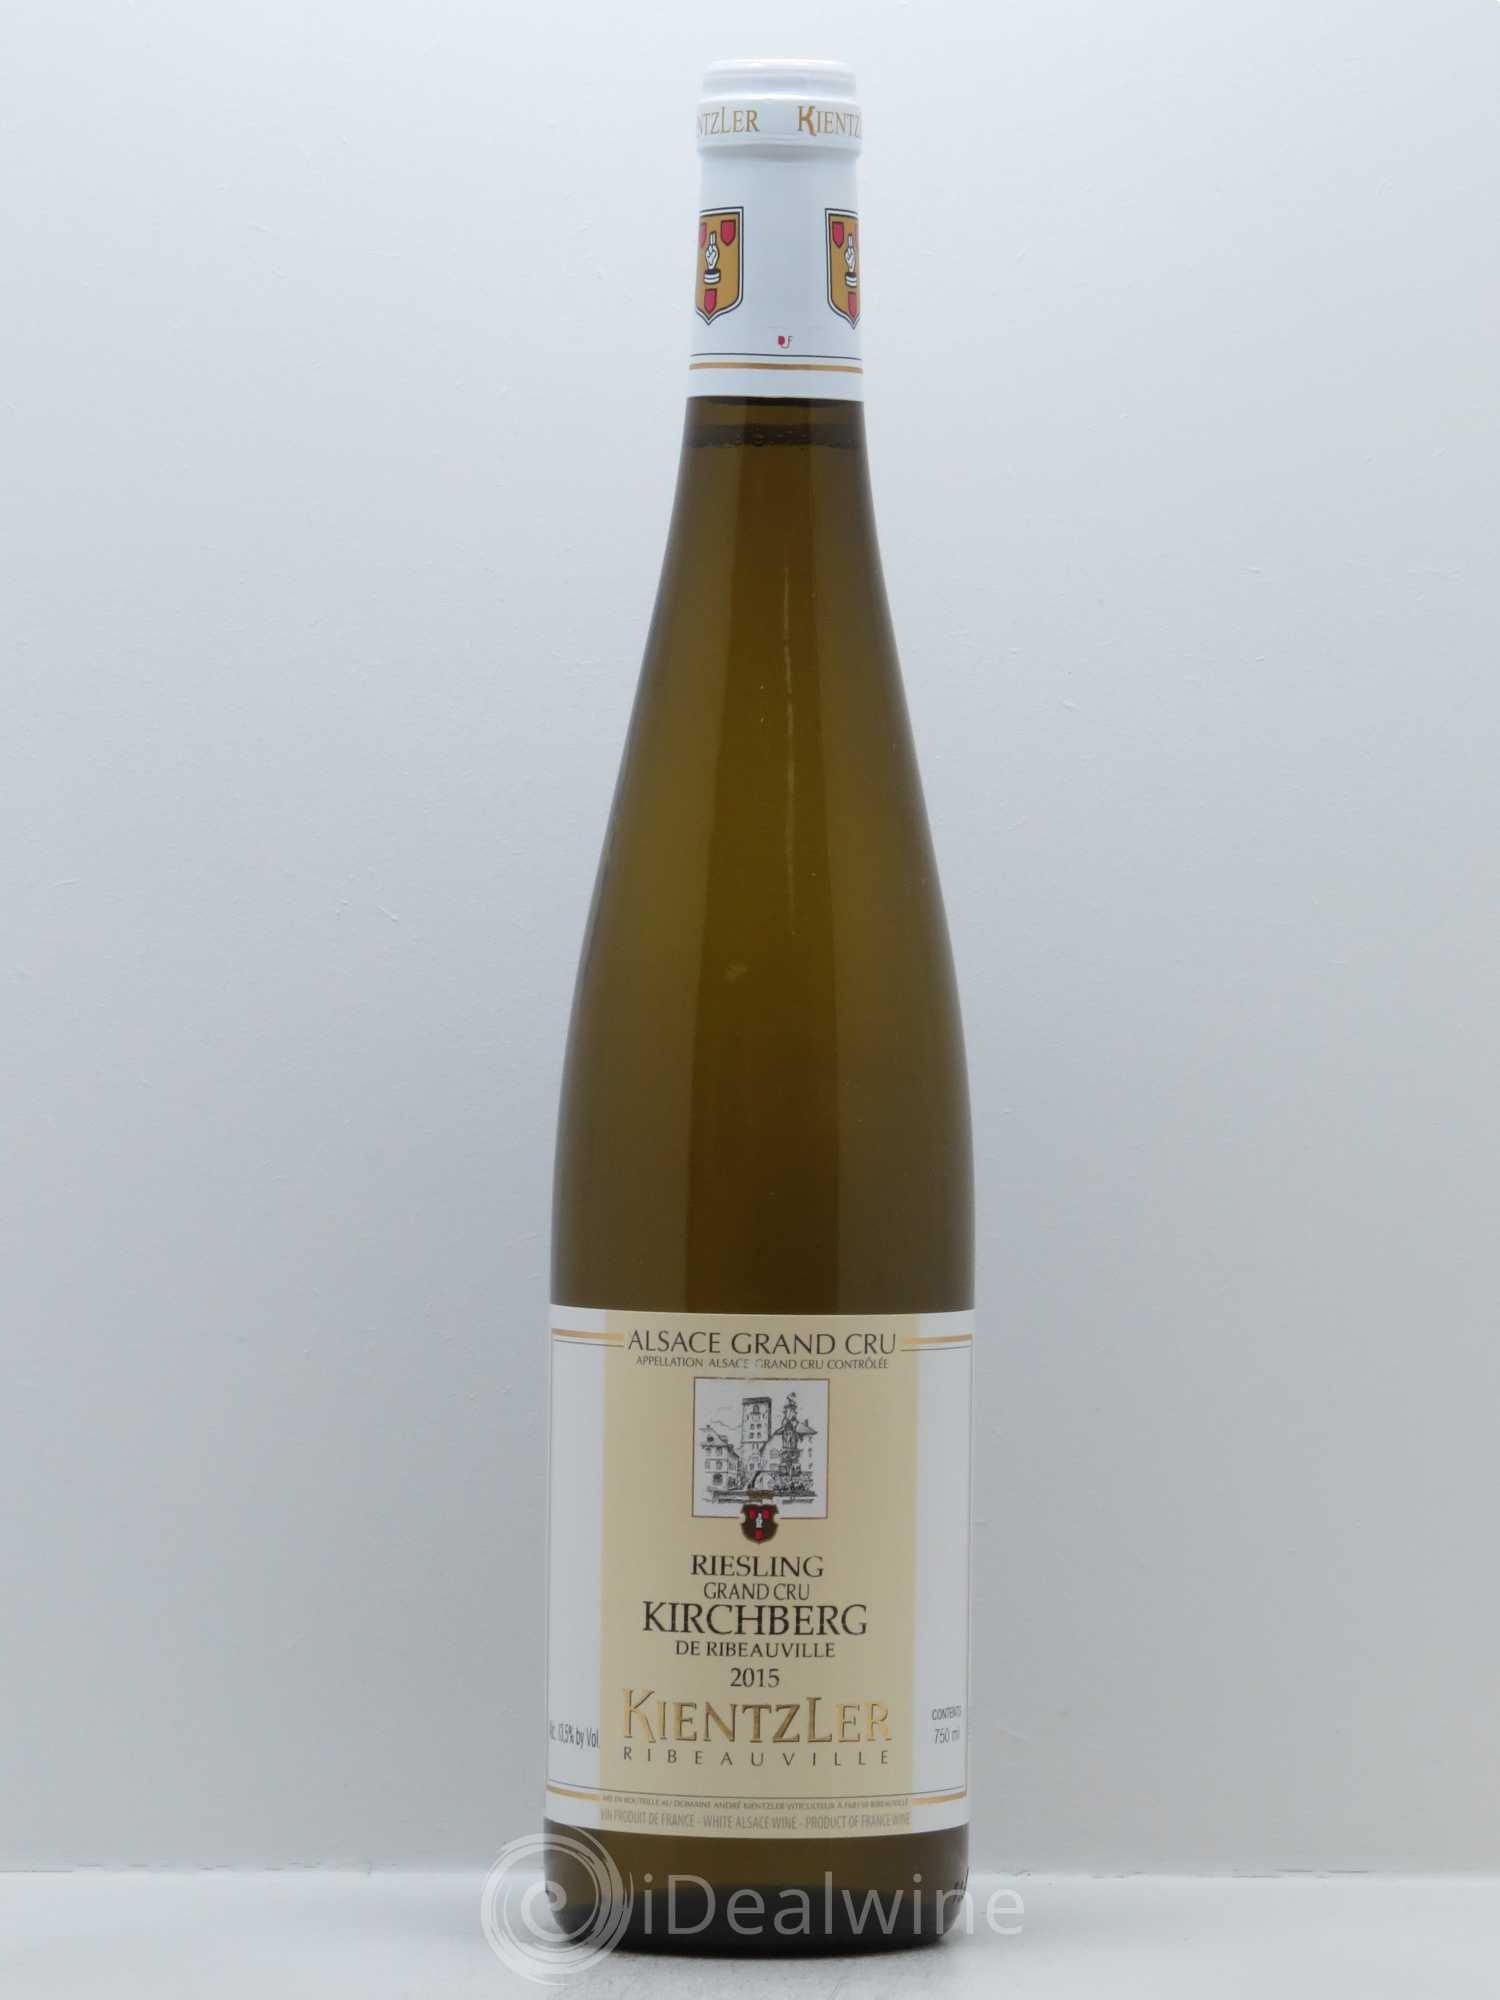 Riesling Grand Cru Kirchberg Kientzler (Domaine)  2015 - Lot of 1 Bottle